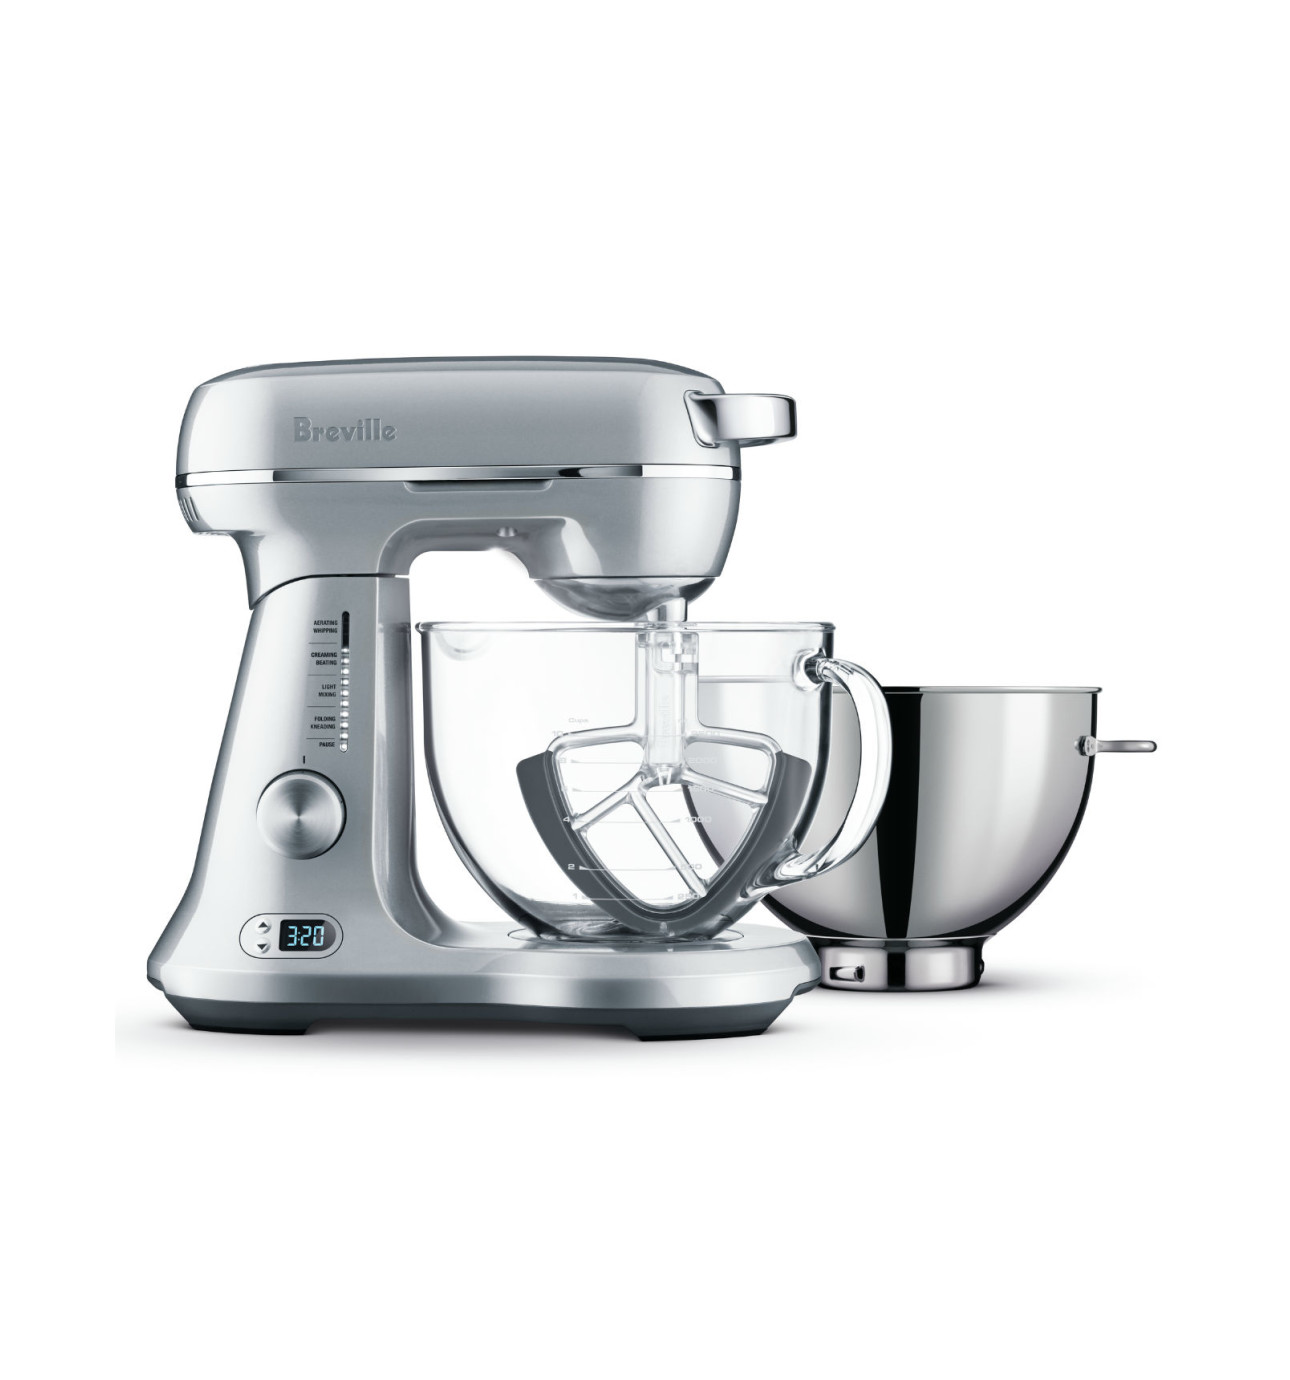 Uncategorized David Jones Kitchen Appliances sale small appliances david jones bem825bal the bakery boss stand mixer silver pearl